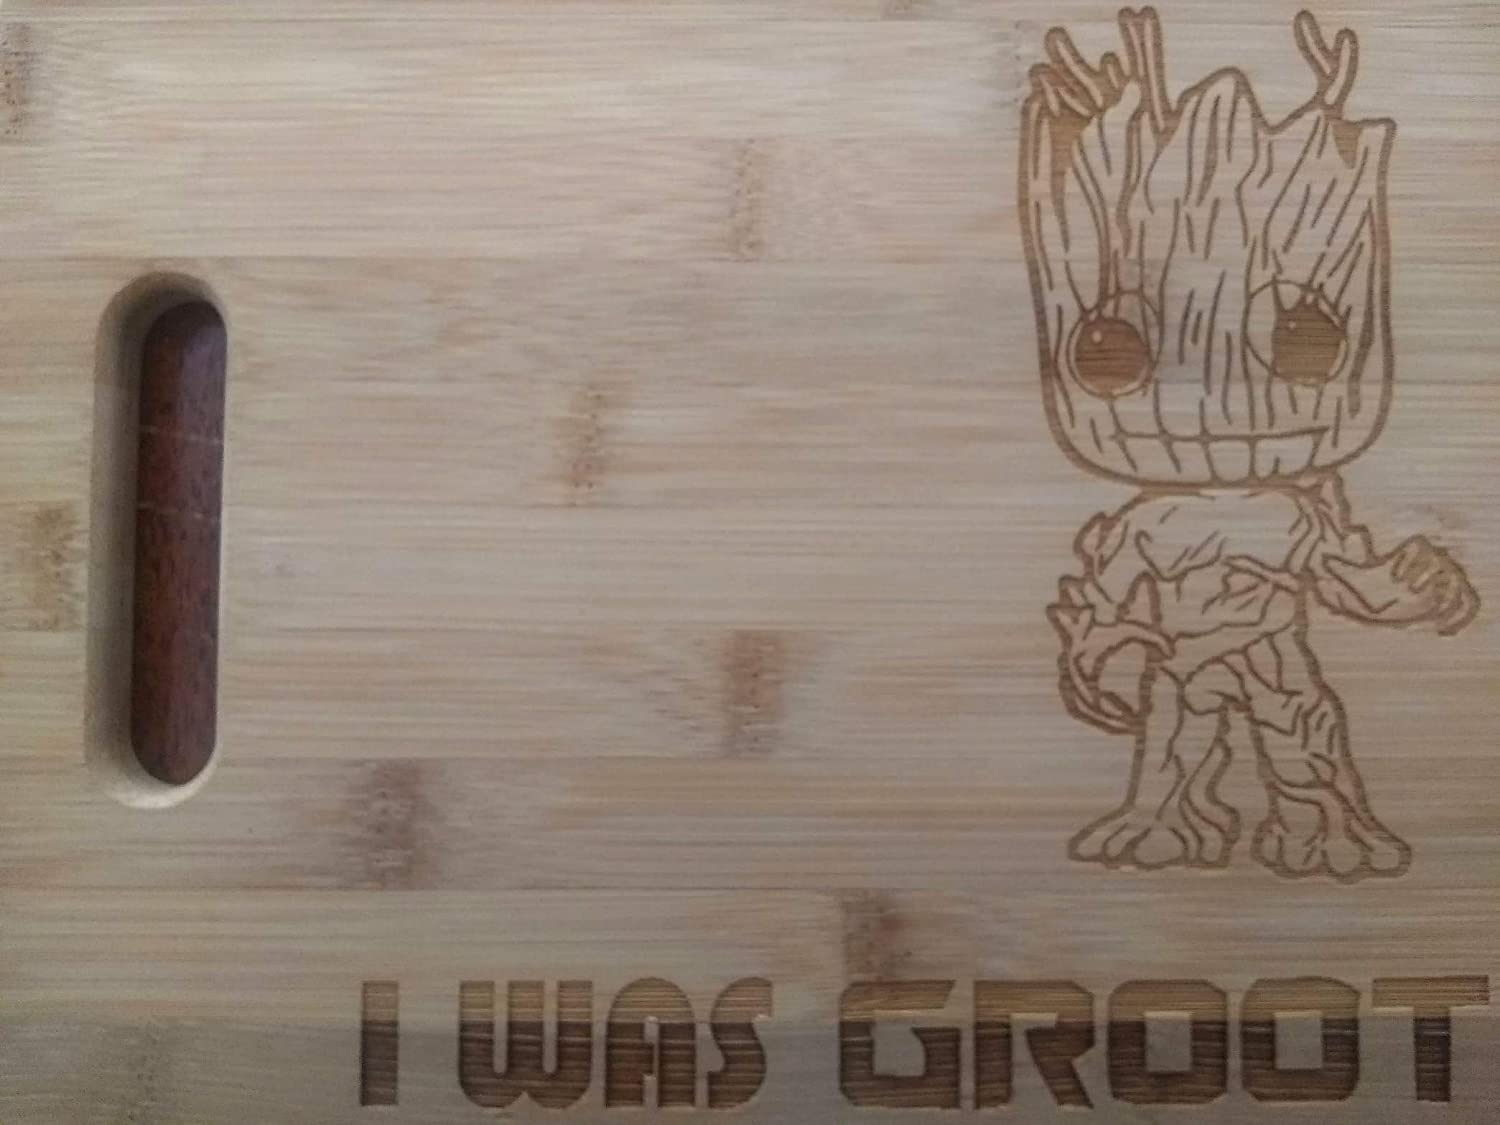 Custom Cutting Board I Was Groot Bamboo Cutting Board Guardians of the Galaxy Avengers Marvel Infinity War Cheese Board Small or Large cutting board Gift for Friends